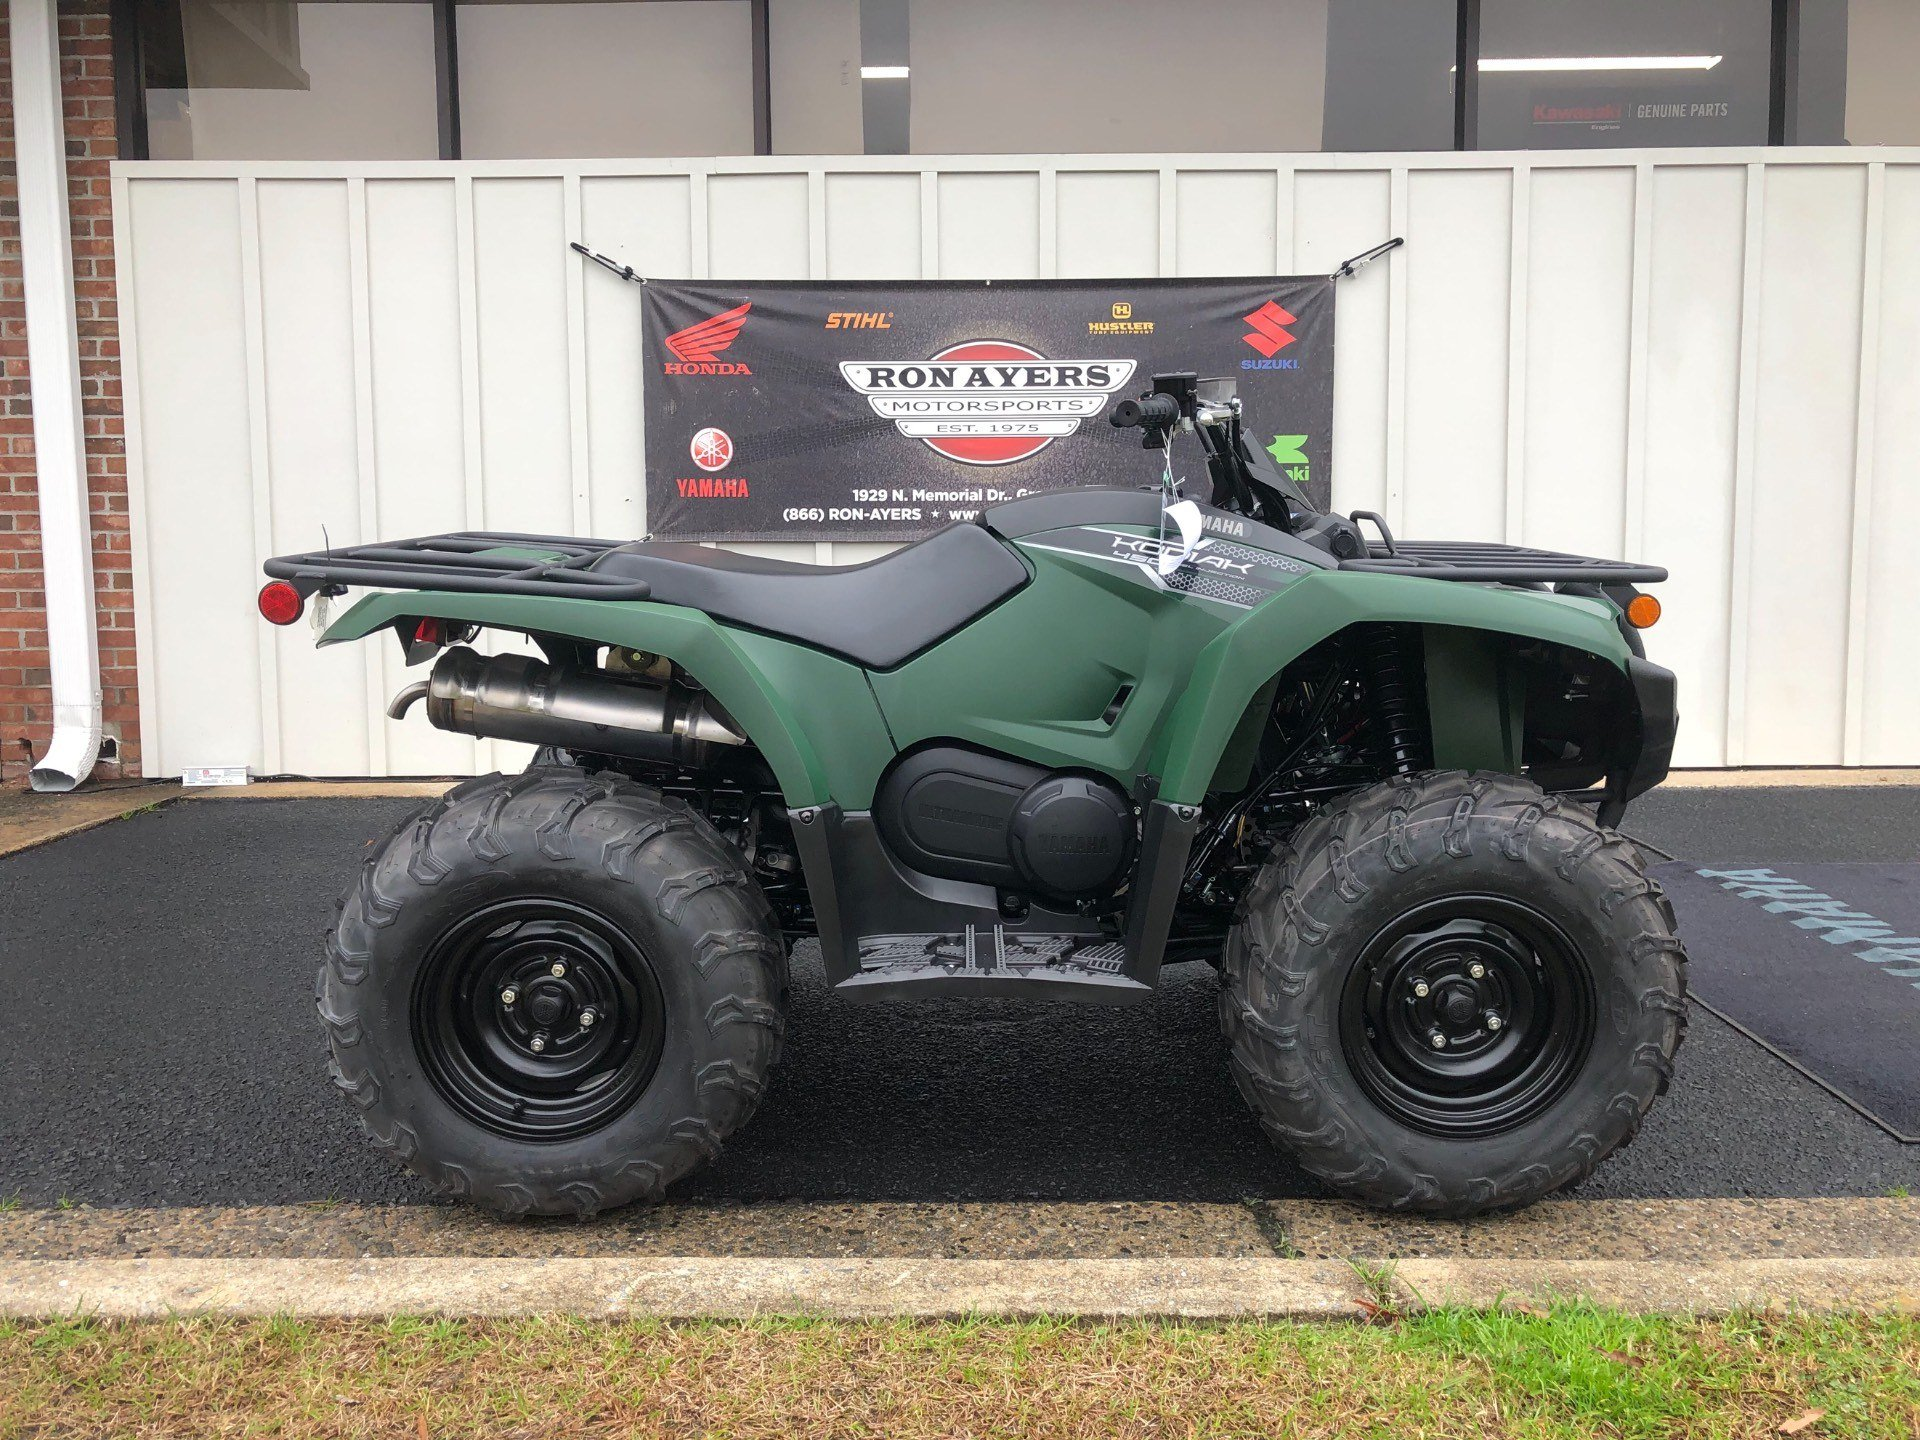 2019 Yamaha Kodiak 450 in Greenville, North Carolina - Photo 1